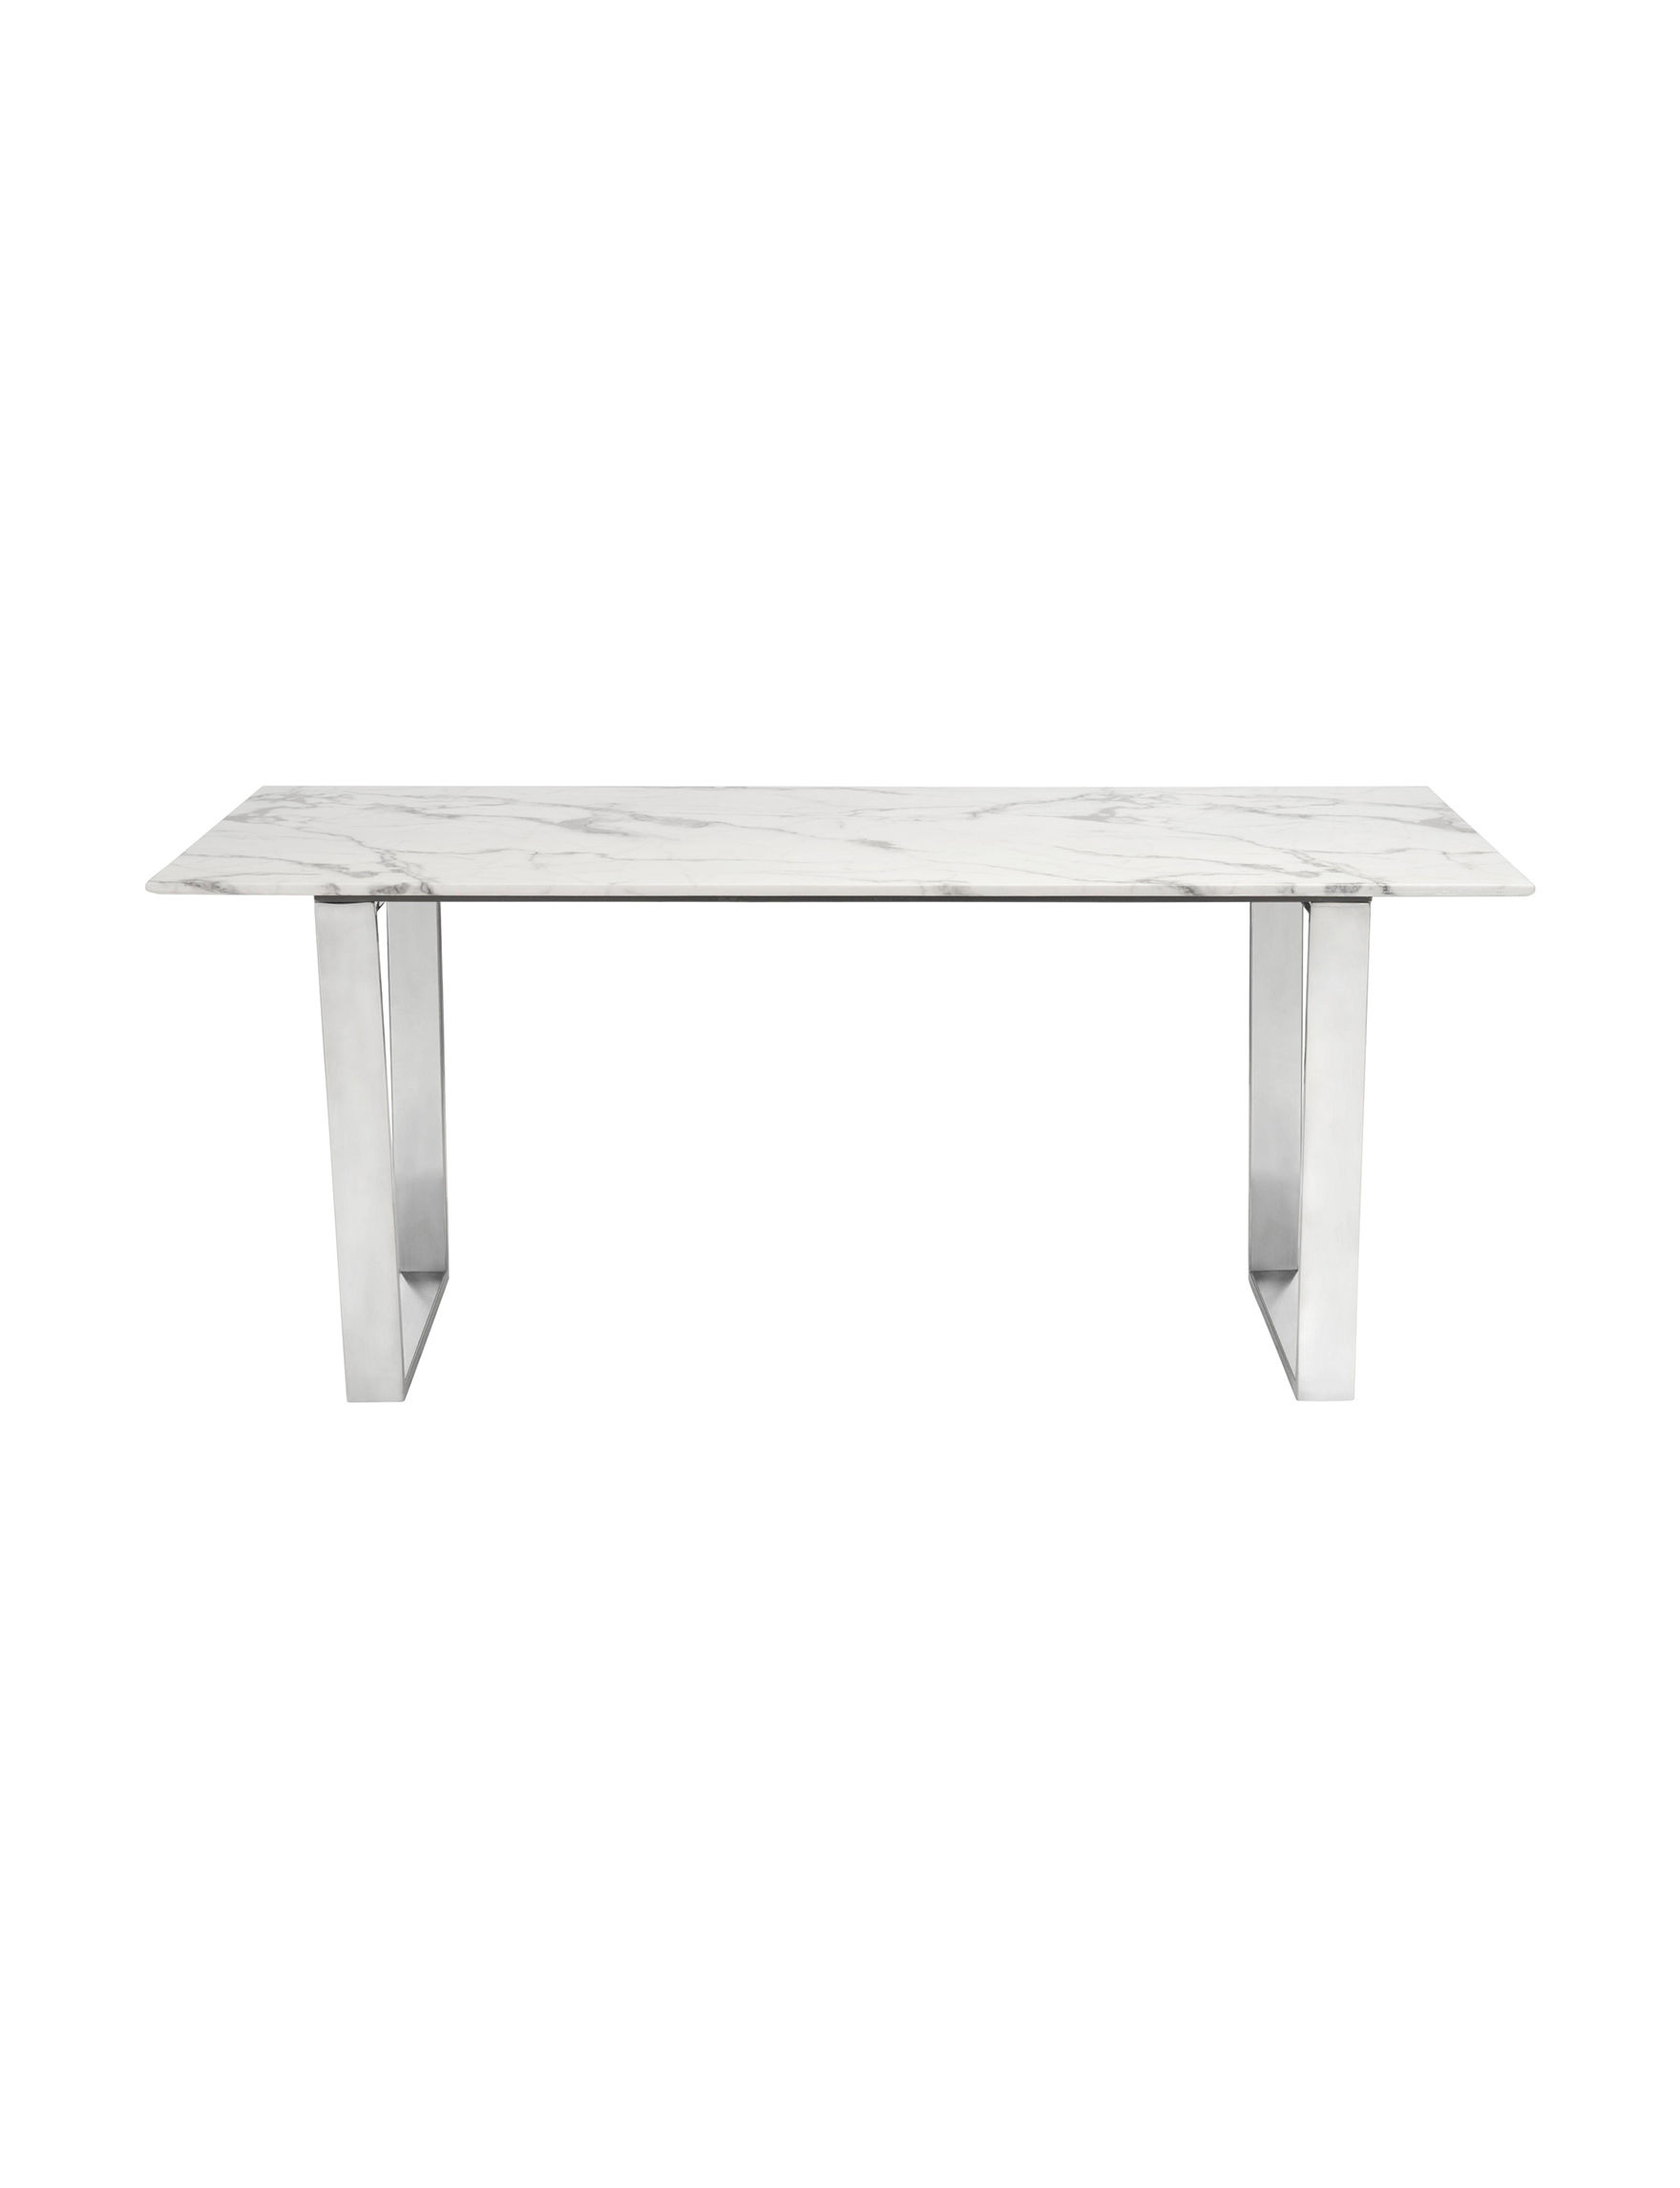 Zuo Modern Stone Dining Tables Kitchen & Dining Furniture